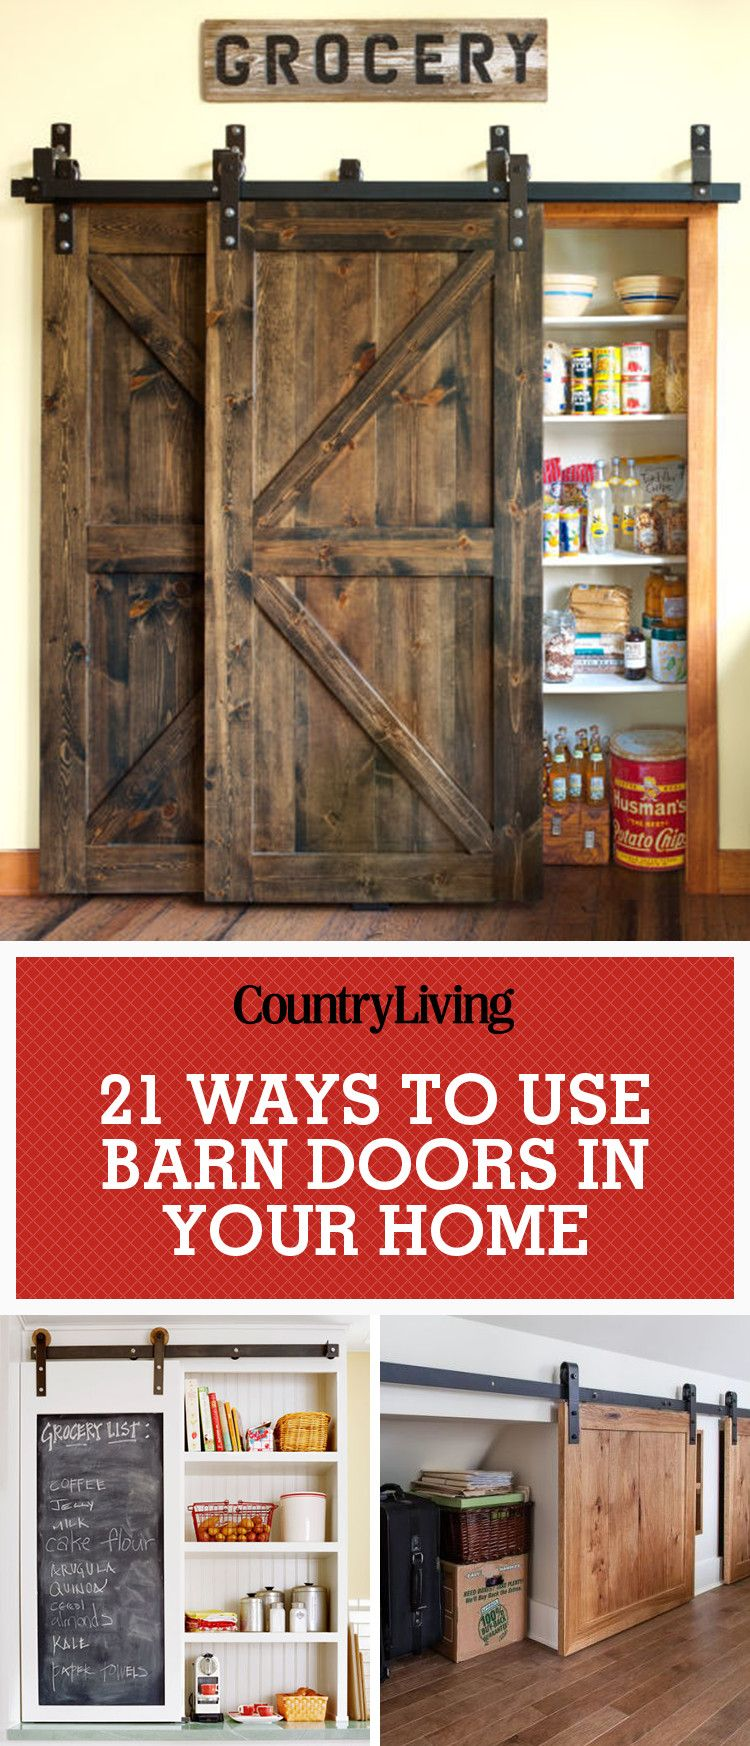 Barn Doors For Homes 20 Best Barn Door Ideas Ways To Use A Barn Door